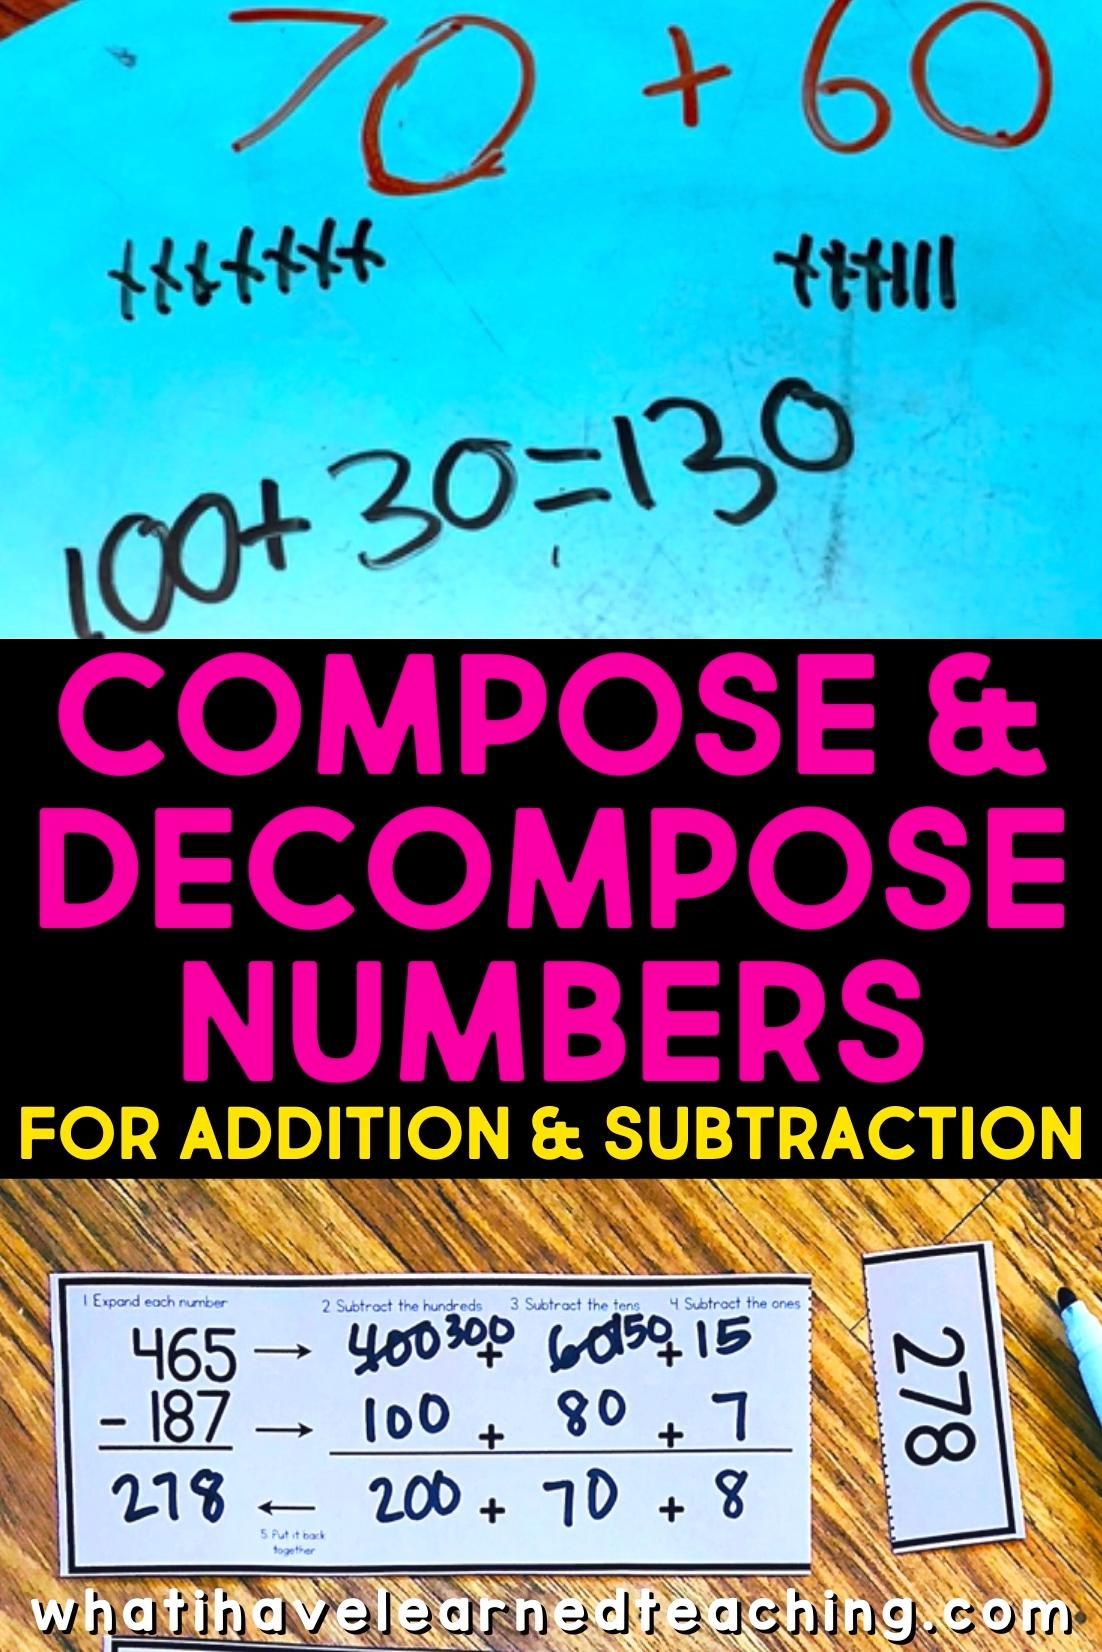 Compose Decompose Numbers For Addition Subtraction Video Video Teaching Tips Decomposing Numbers Math Lessons [ 1652 x 1102 Pixel ]